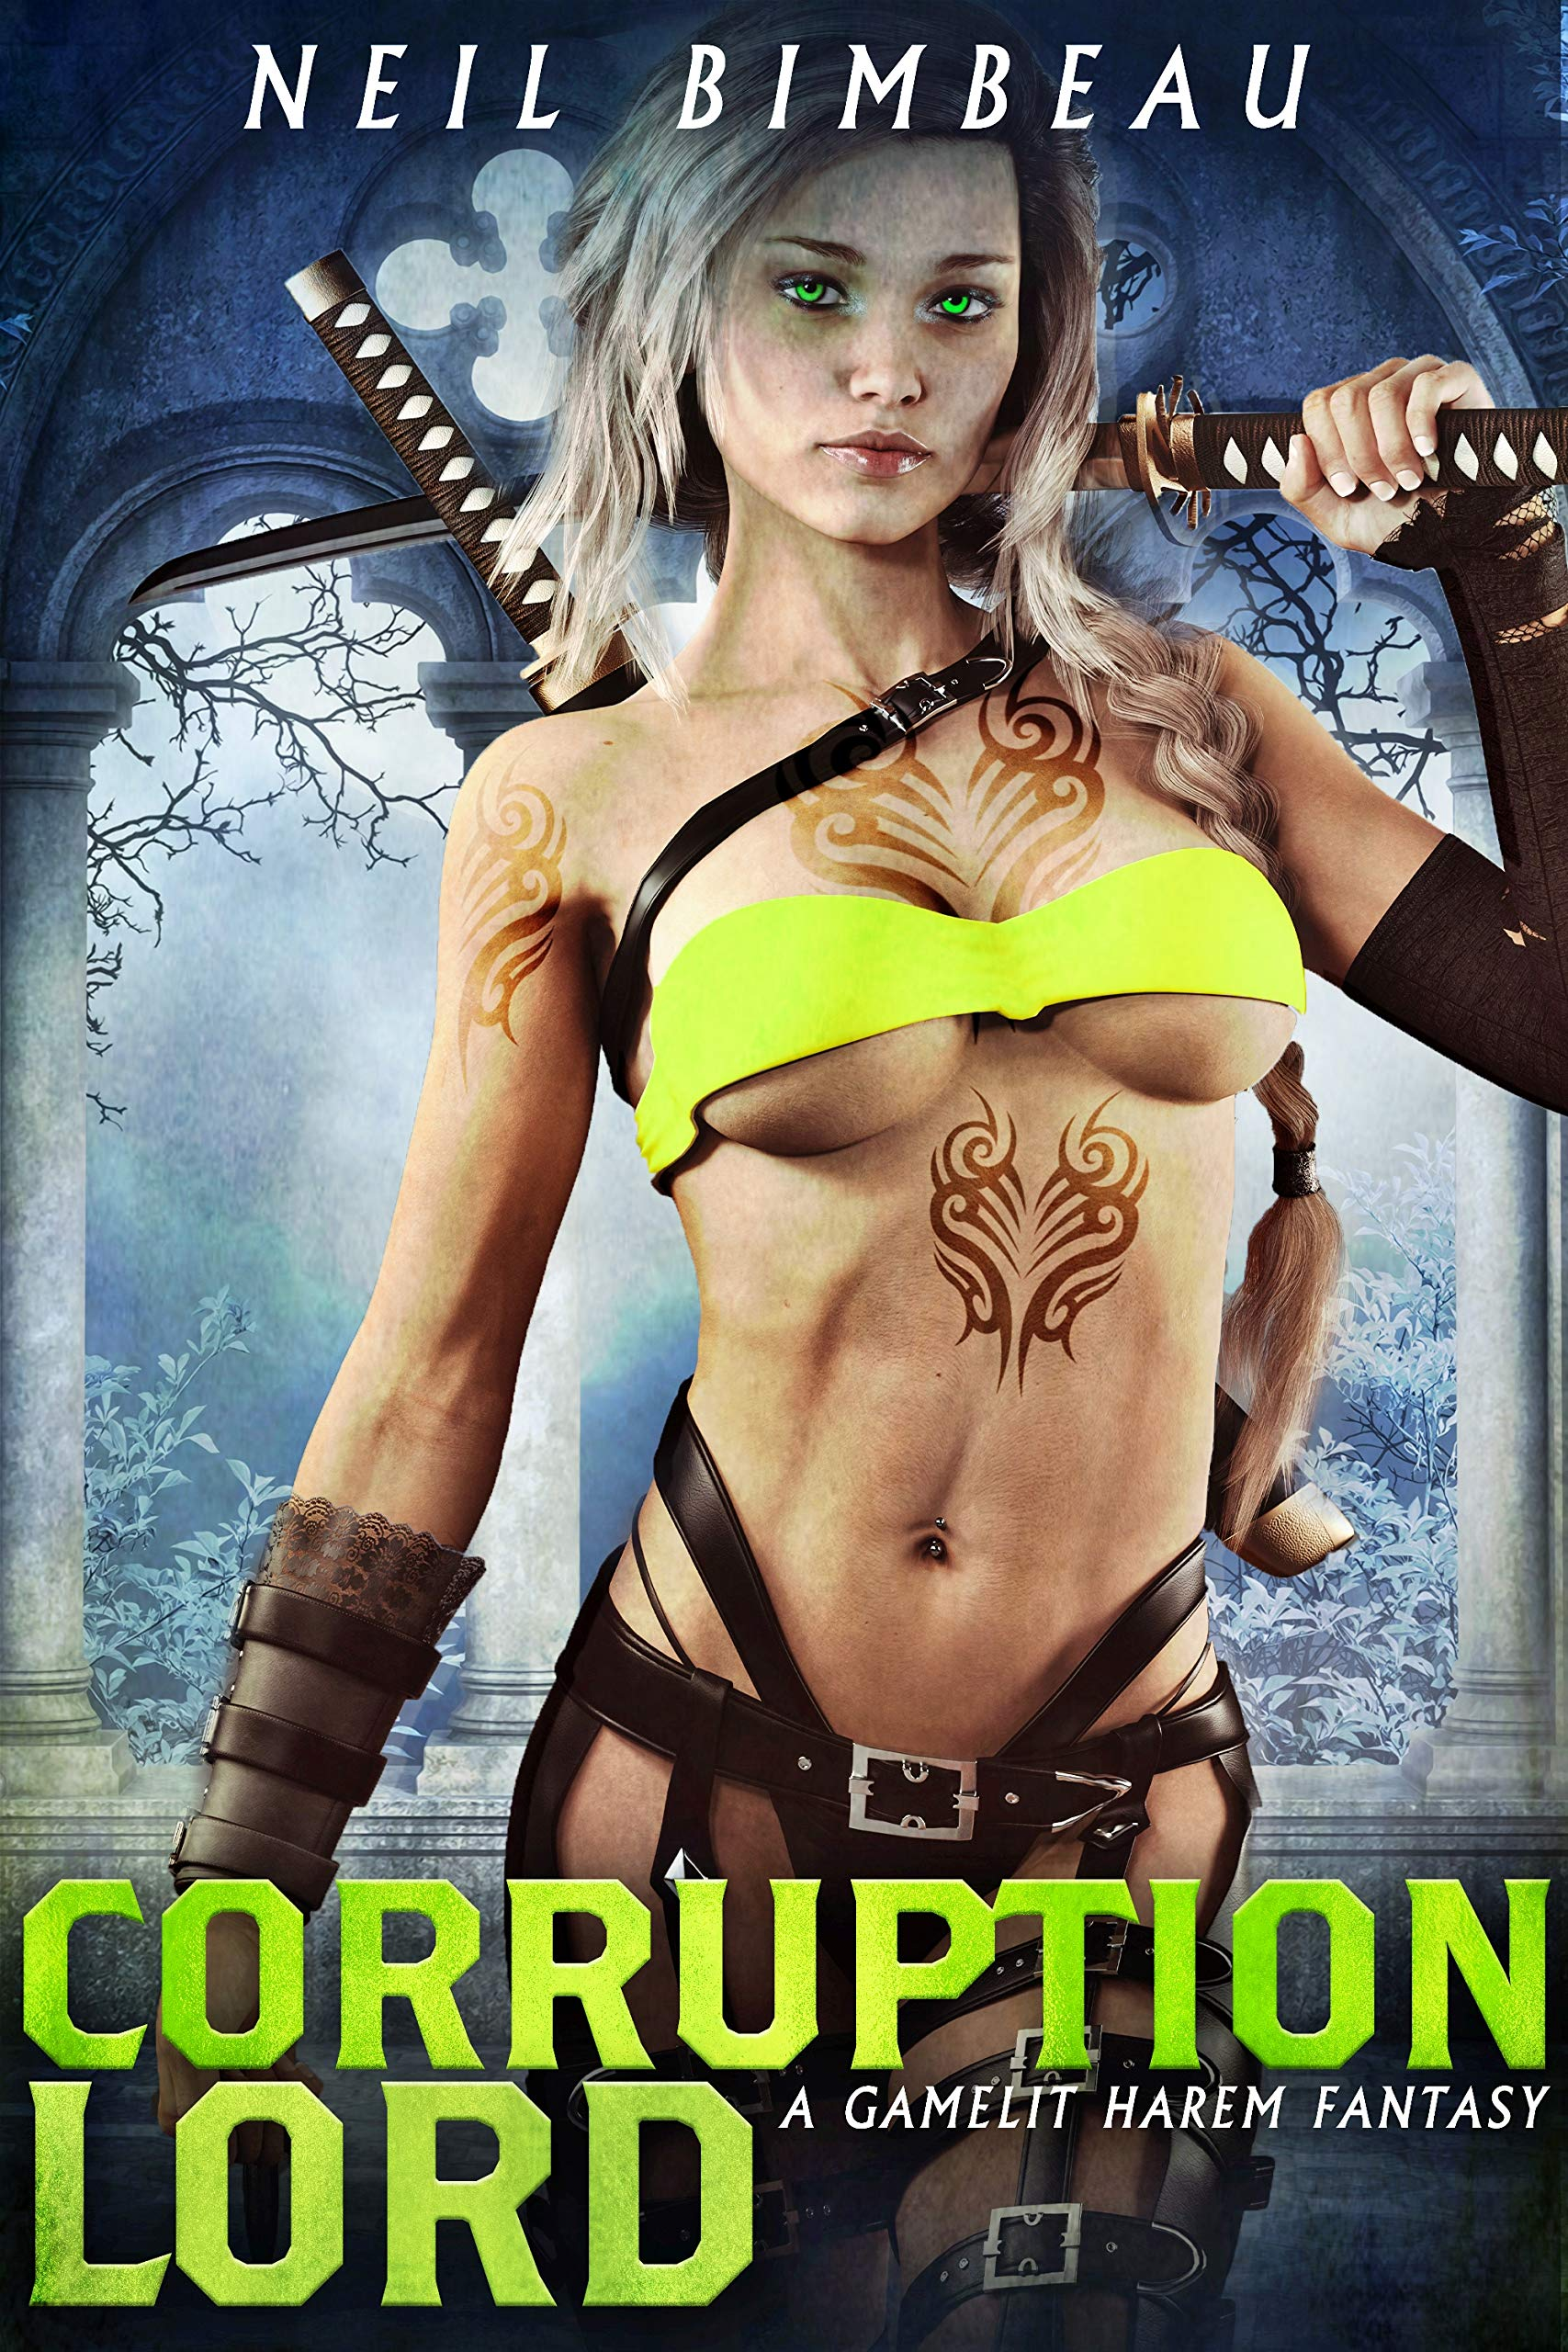 Corruption Lord (Corruption Lord #1)